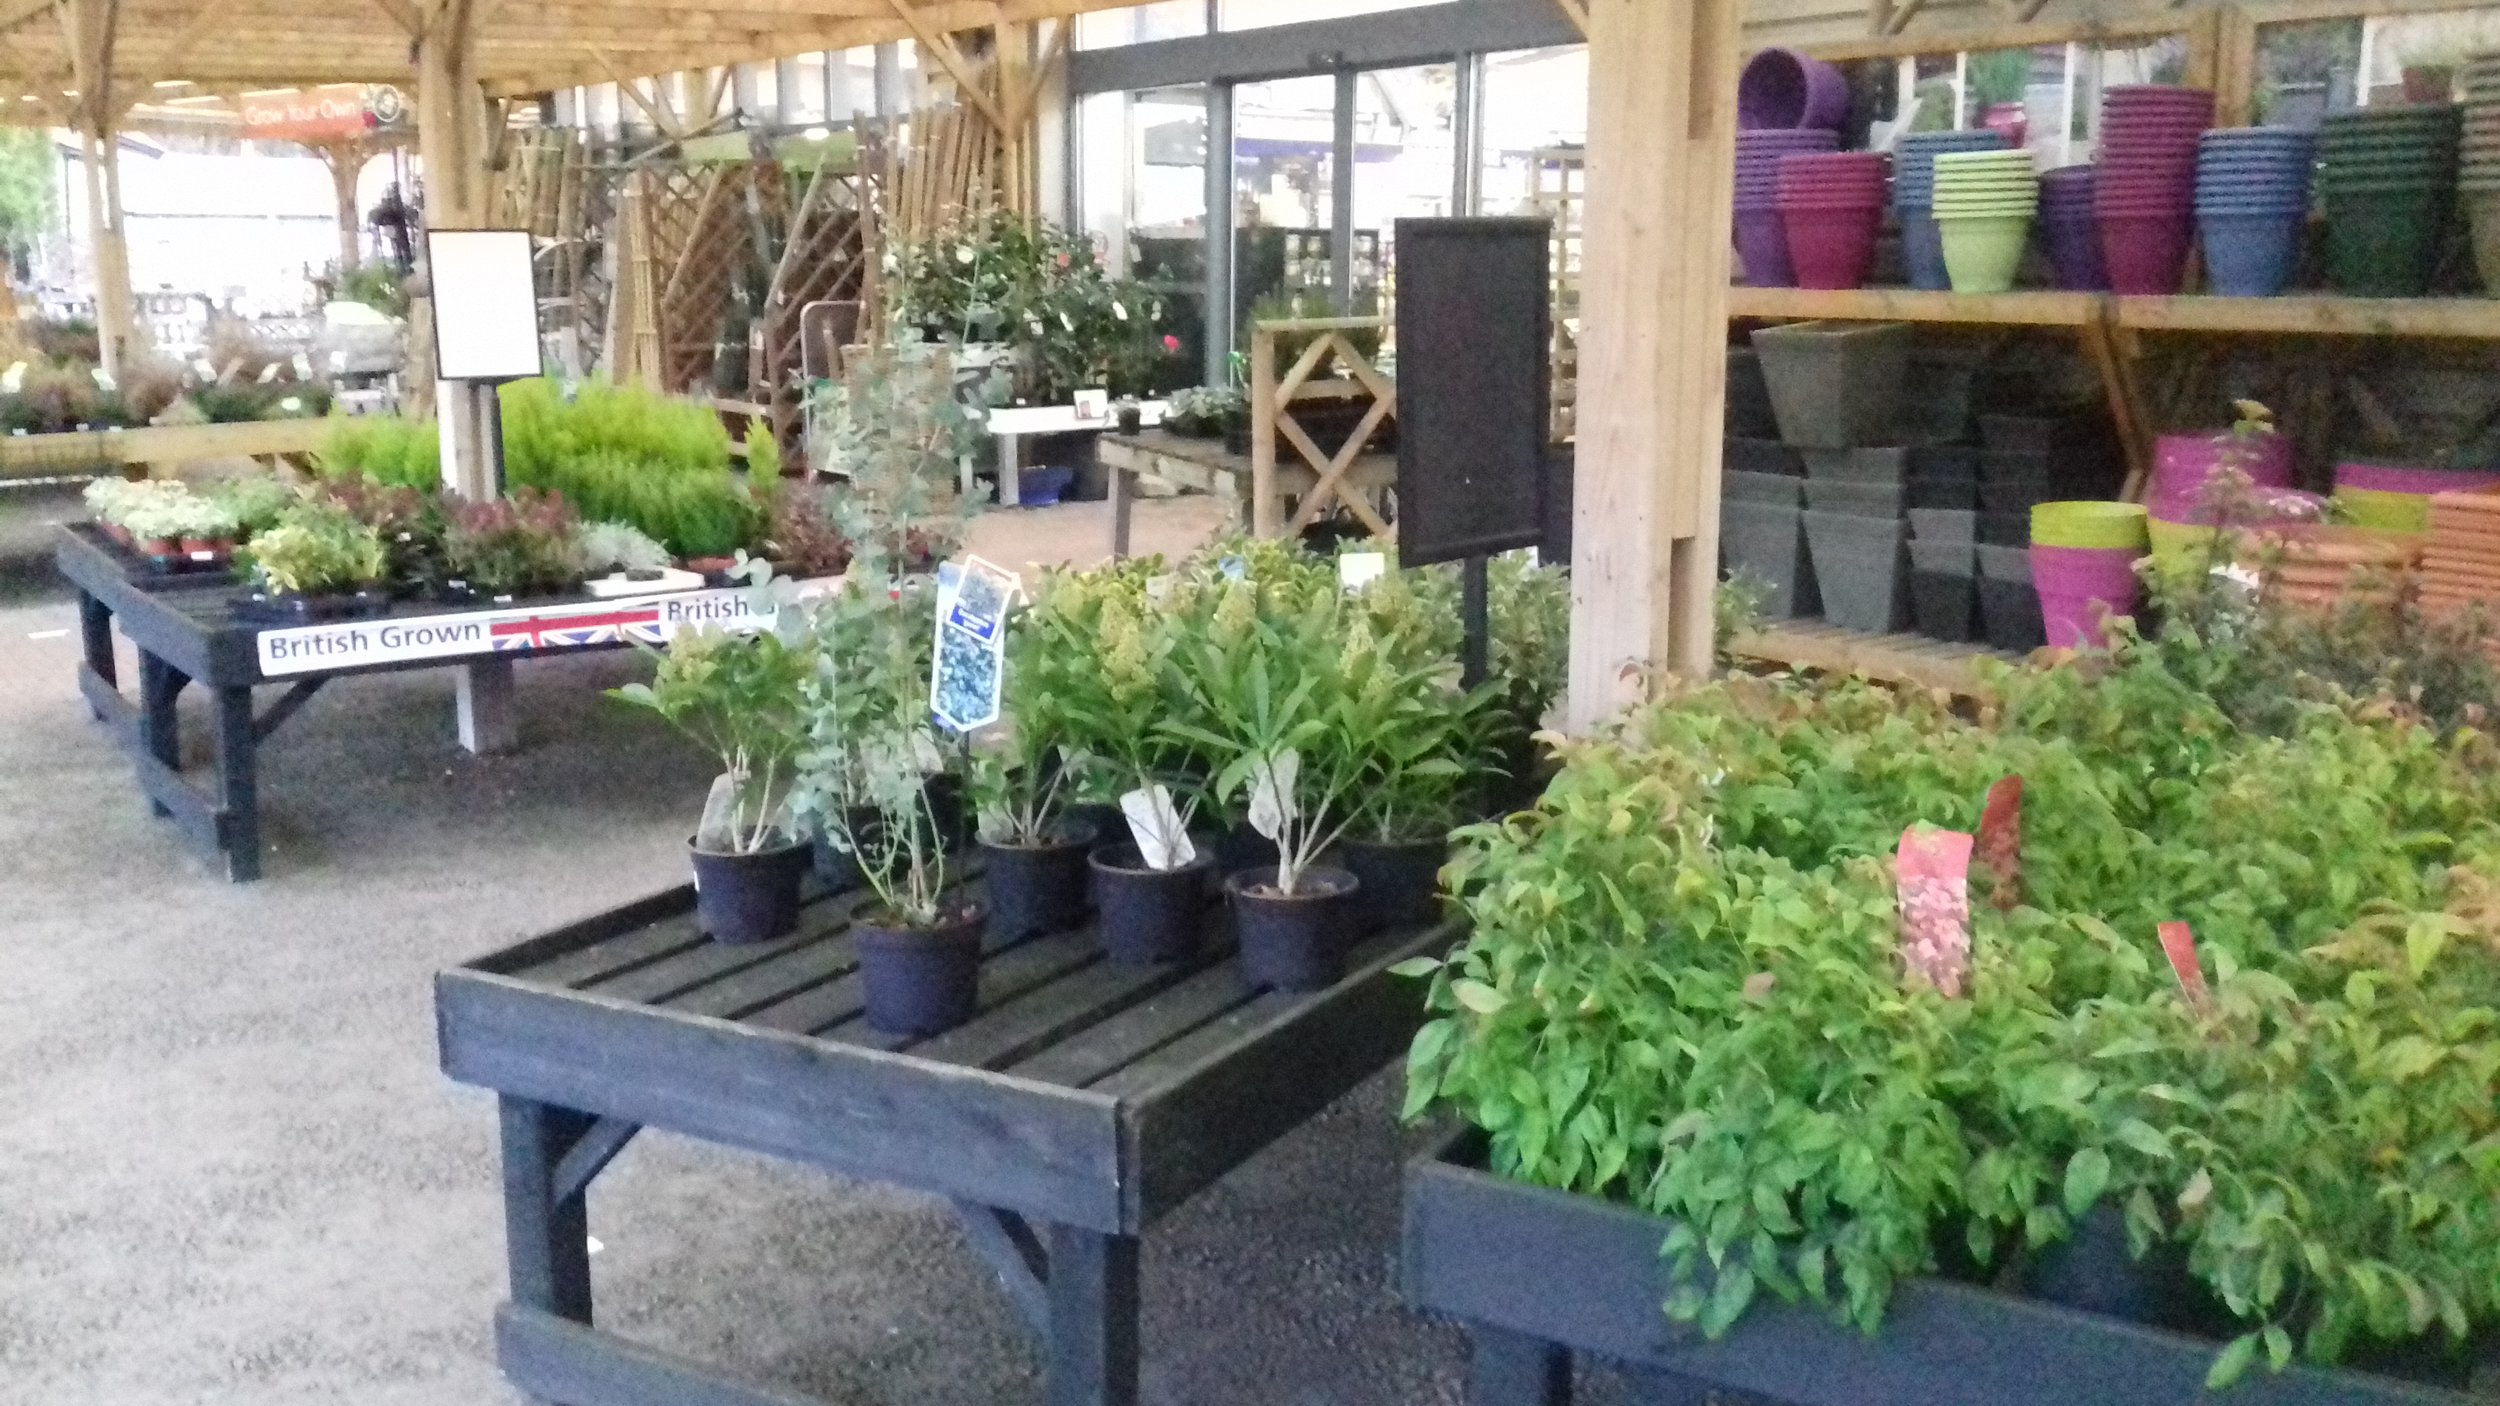 You may like our plant sourcing service too